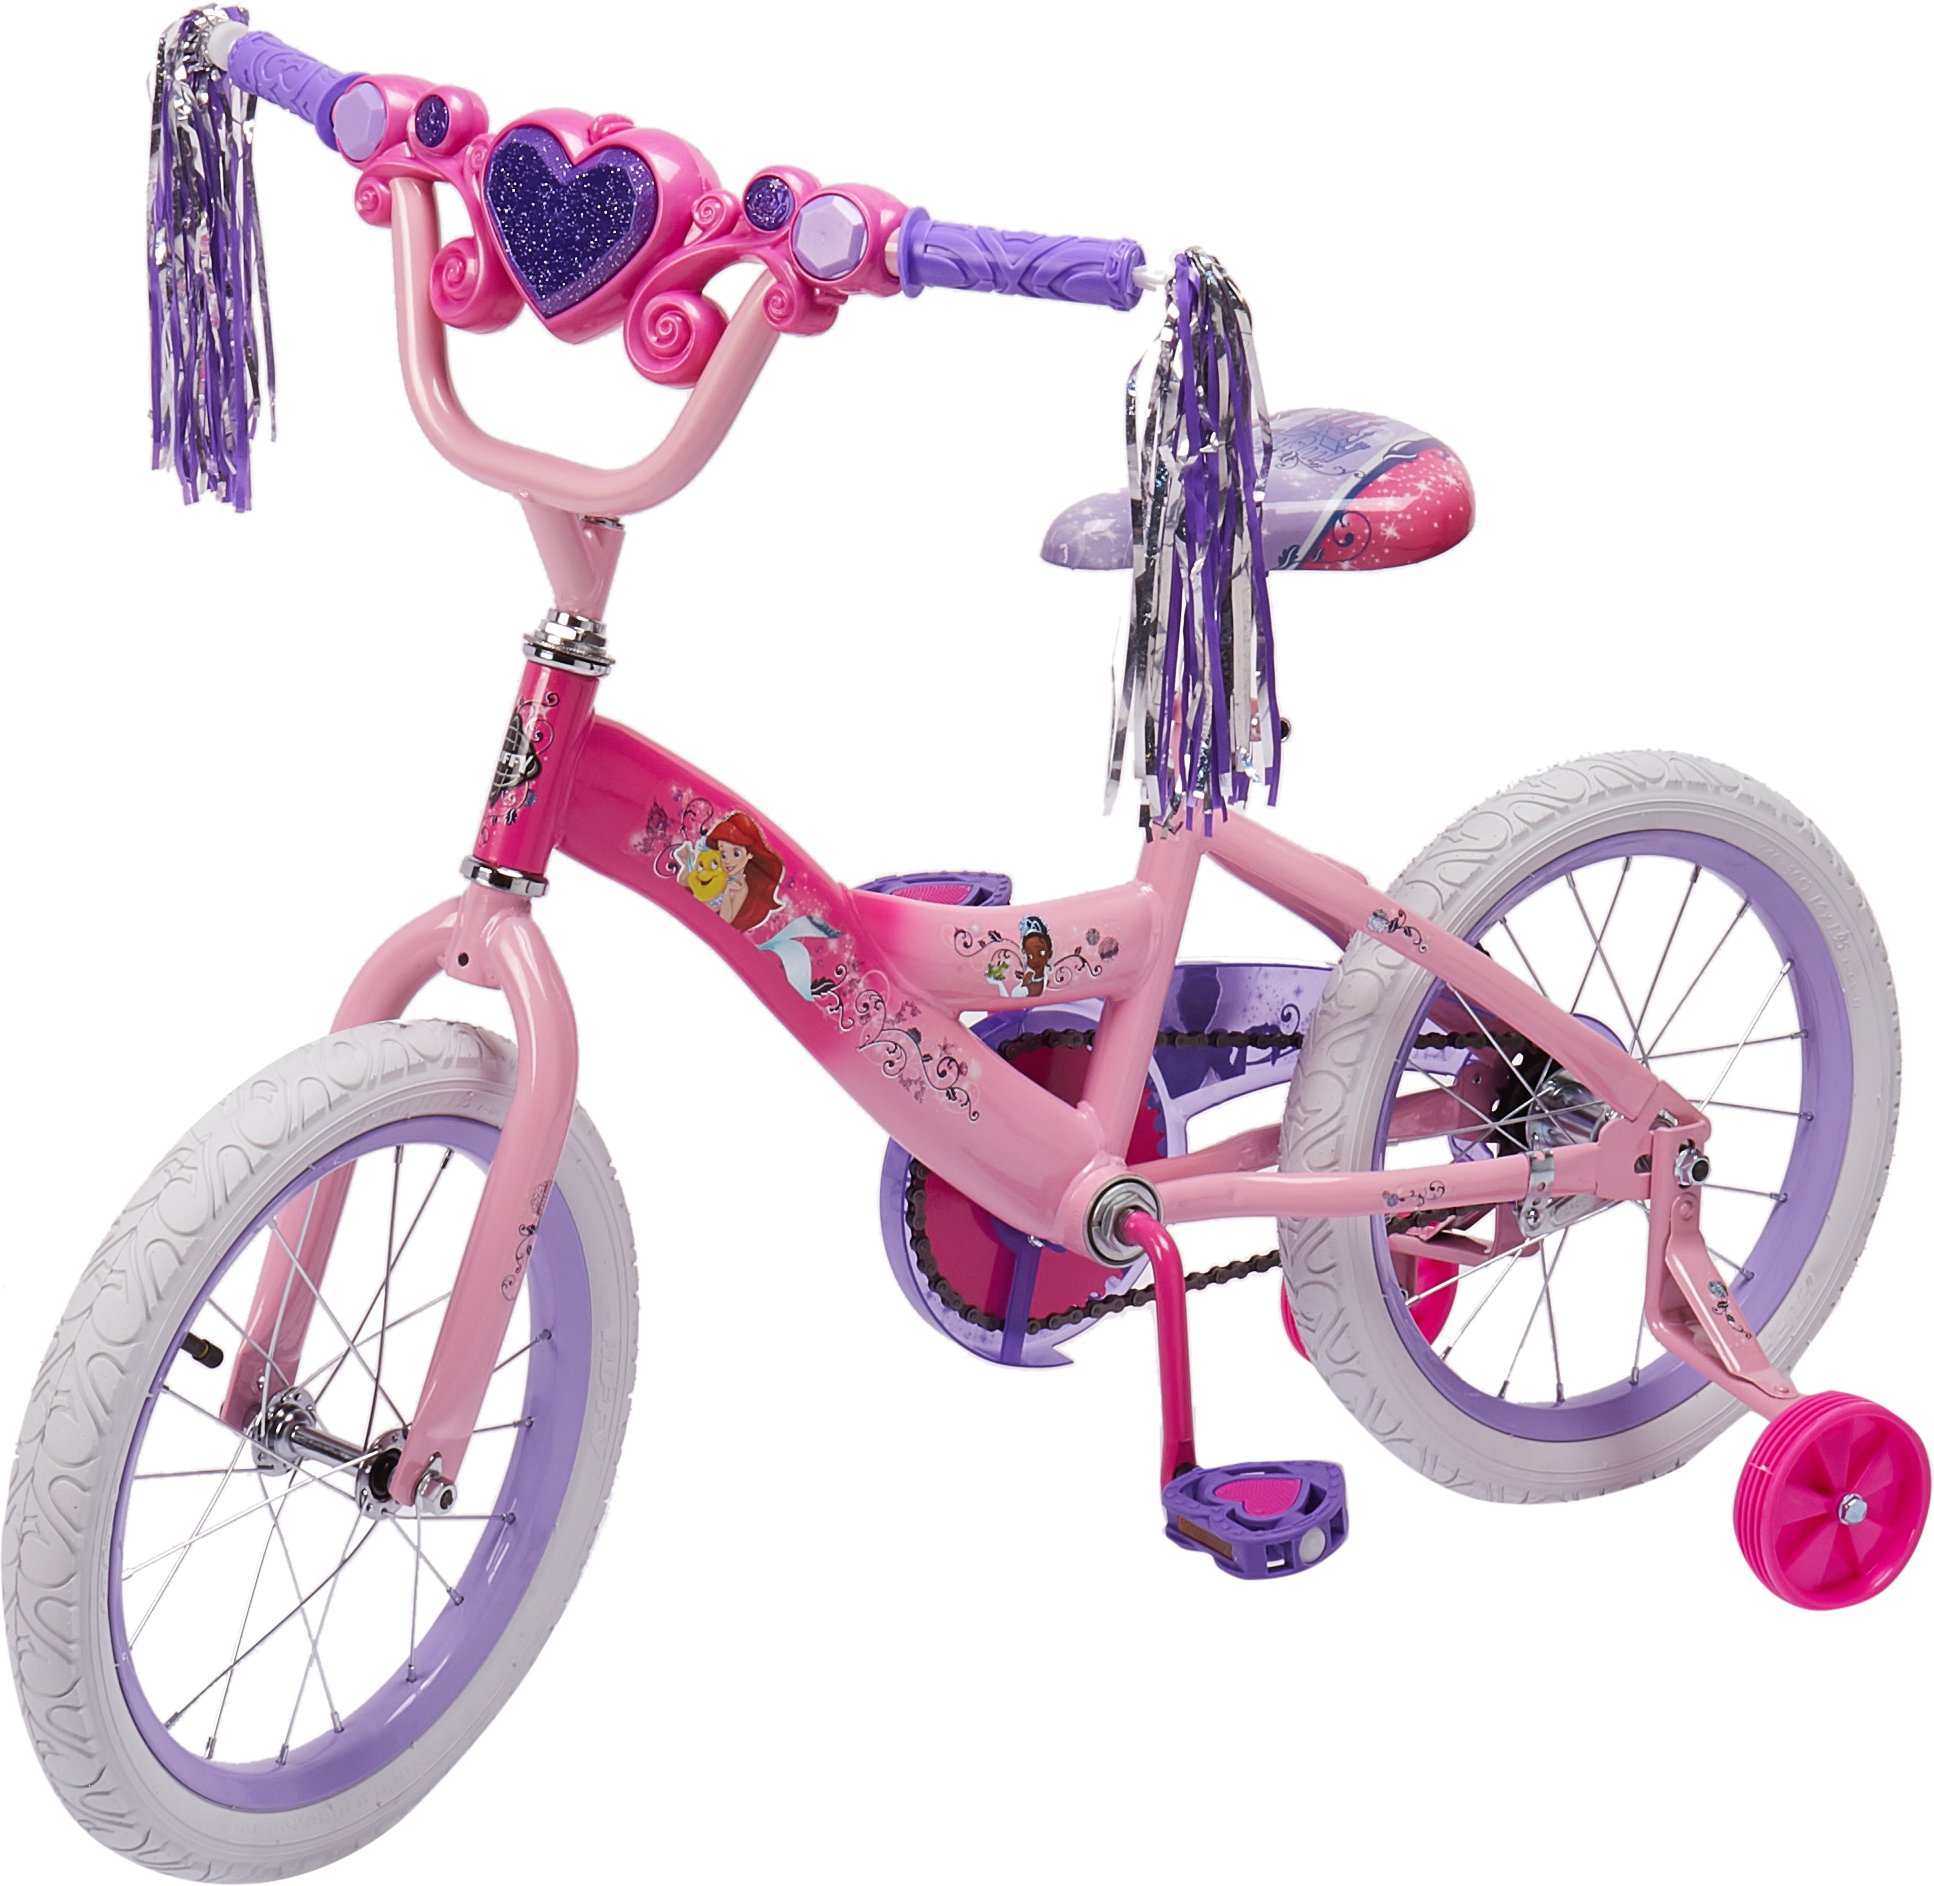 16'' Disney Princess Girls' Bike by Huffy by Huffy